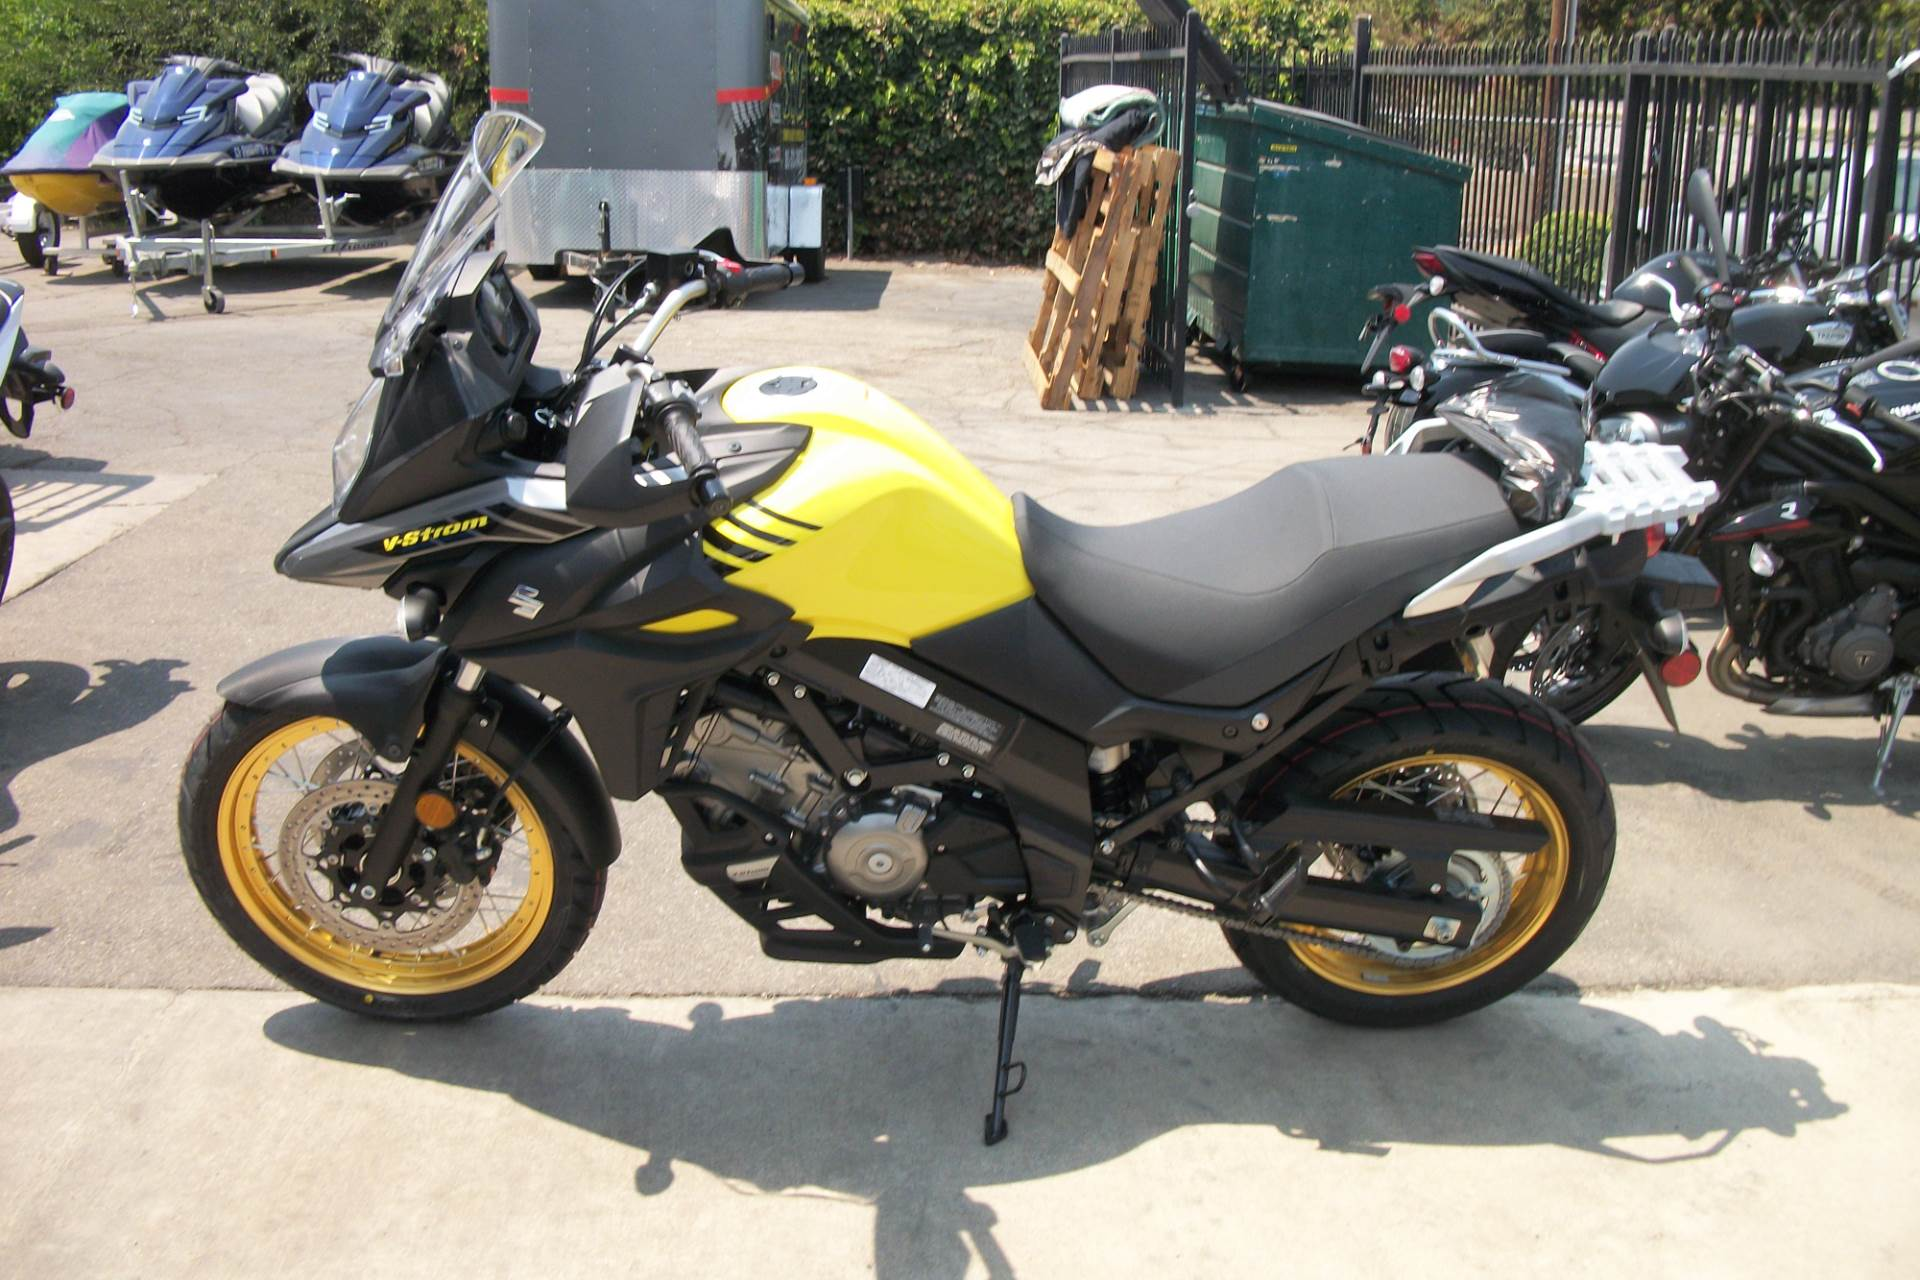 2018 Suzuki V-Strom 650XT in Simi Valley, California - Photo 2